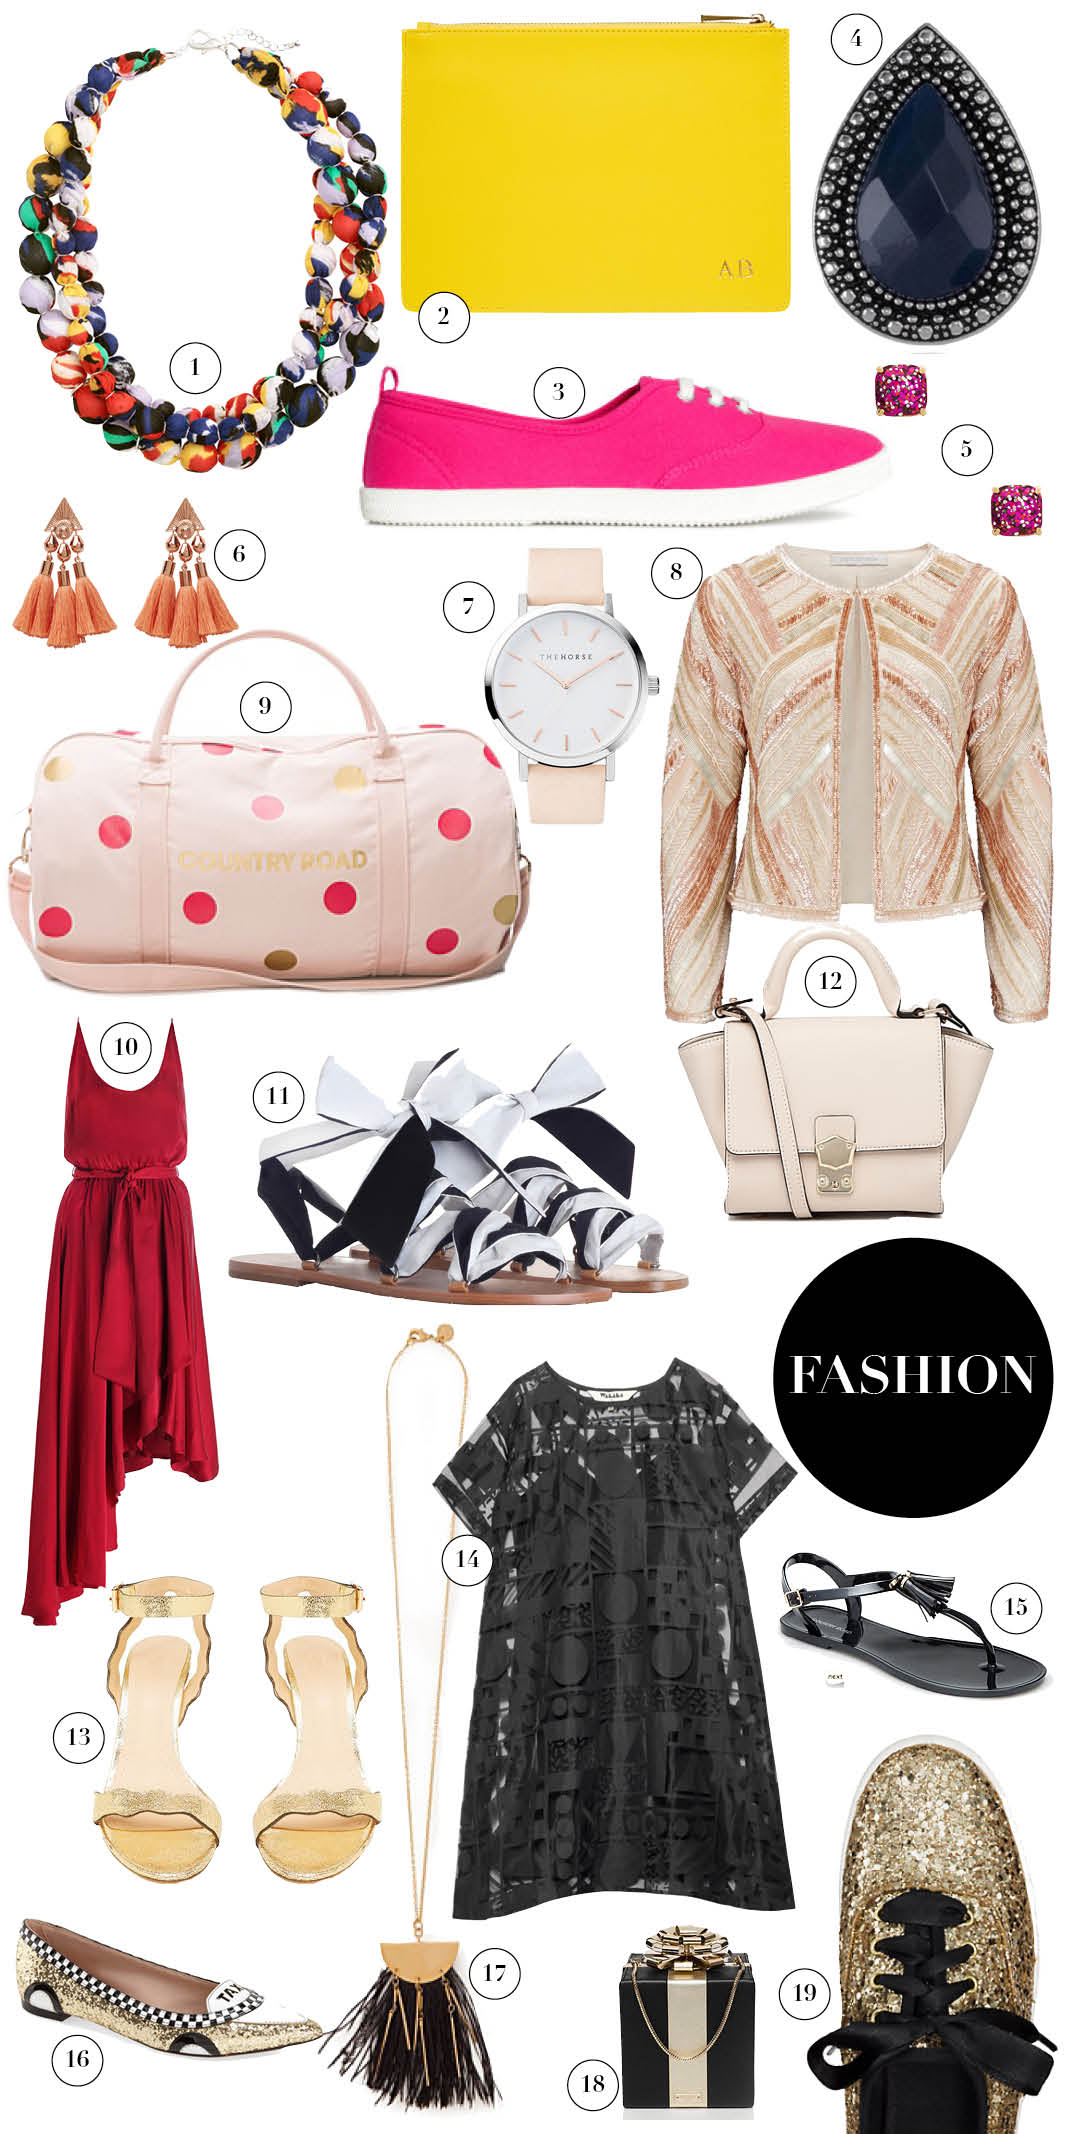 Fashion, Office, Home2